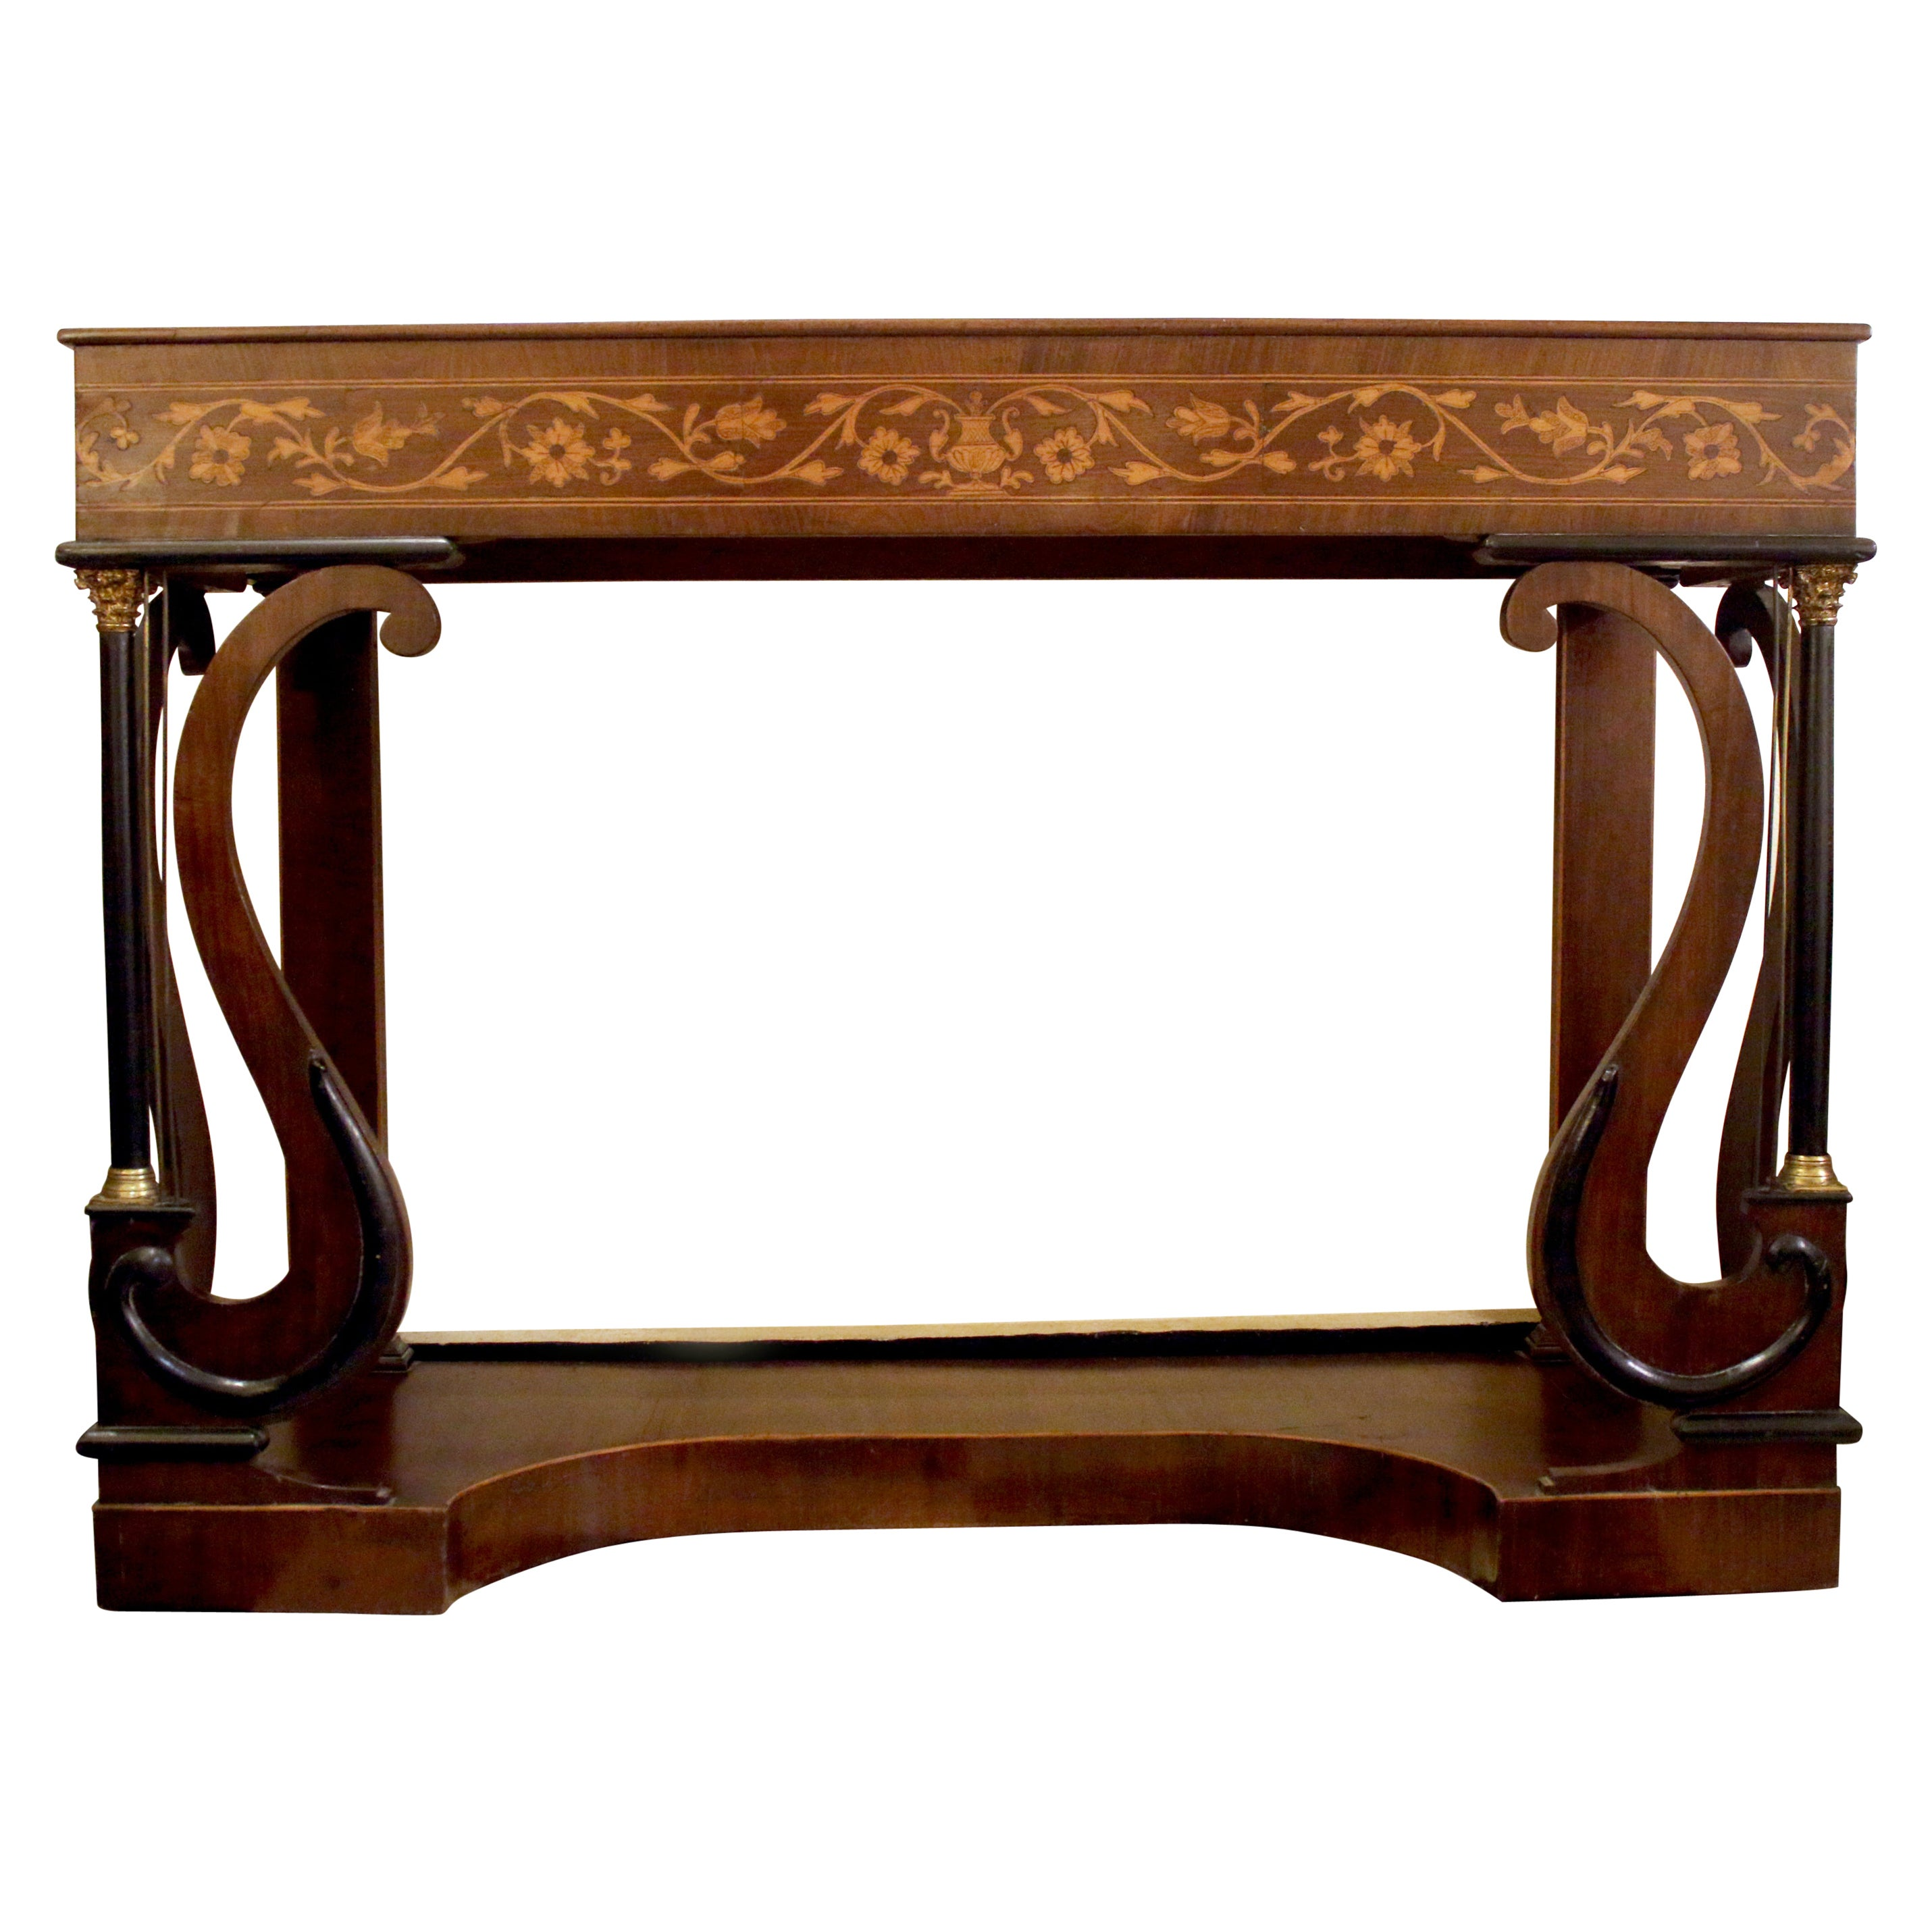 Regency Period Mahogany Console Table with Inlaid Satinwood